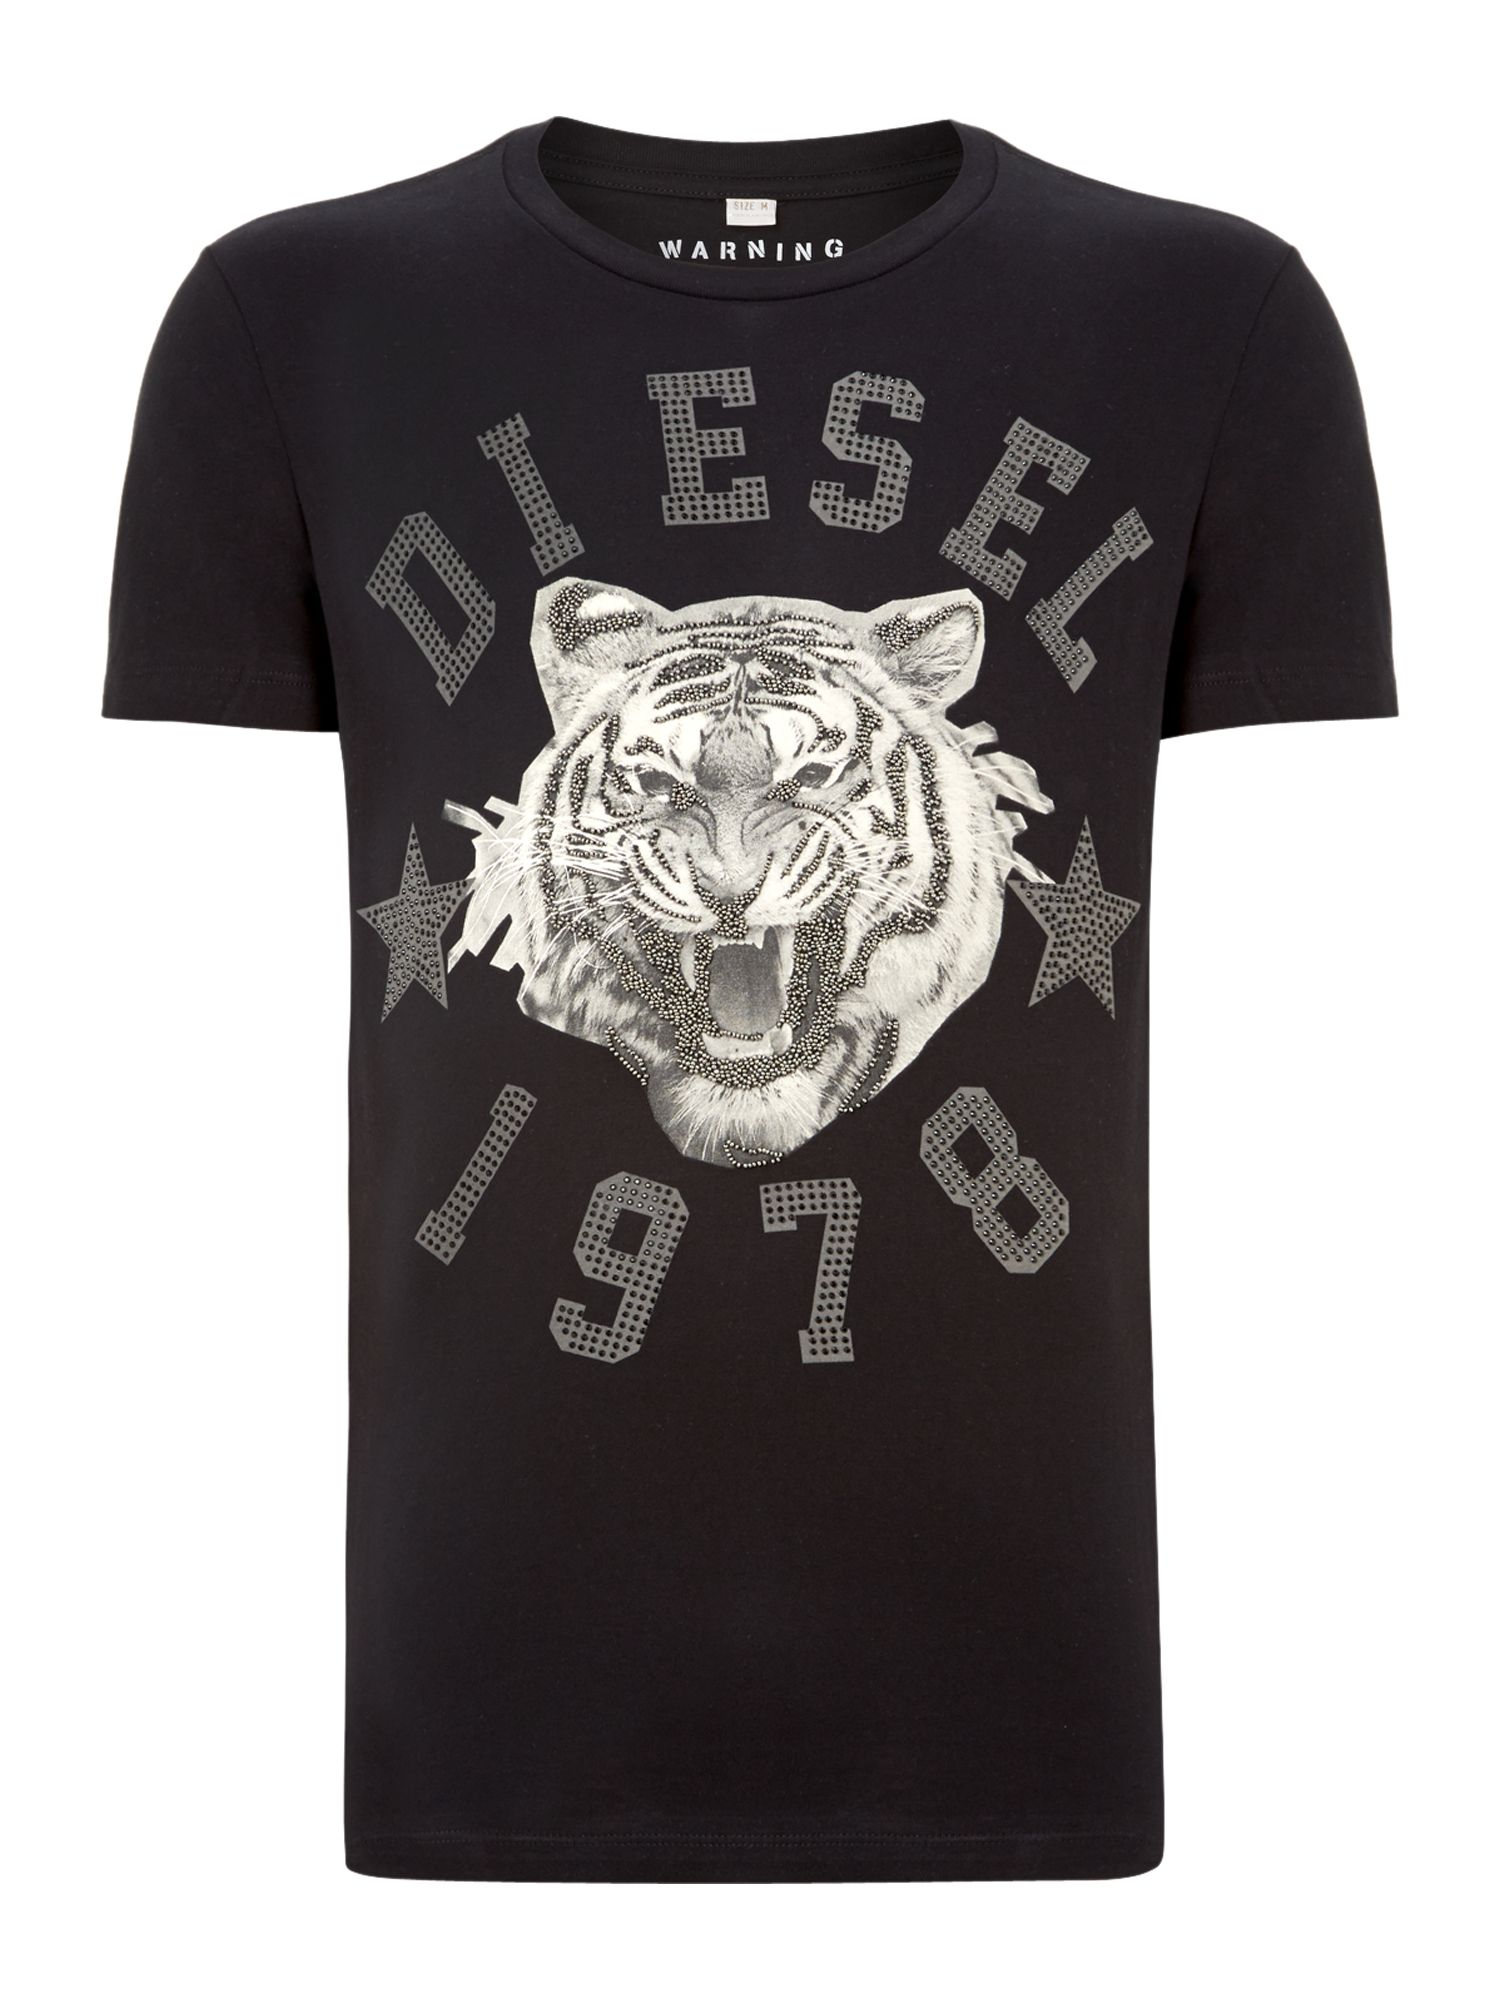 Diamante printed t shirt